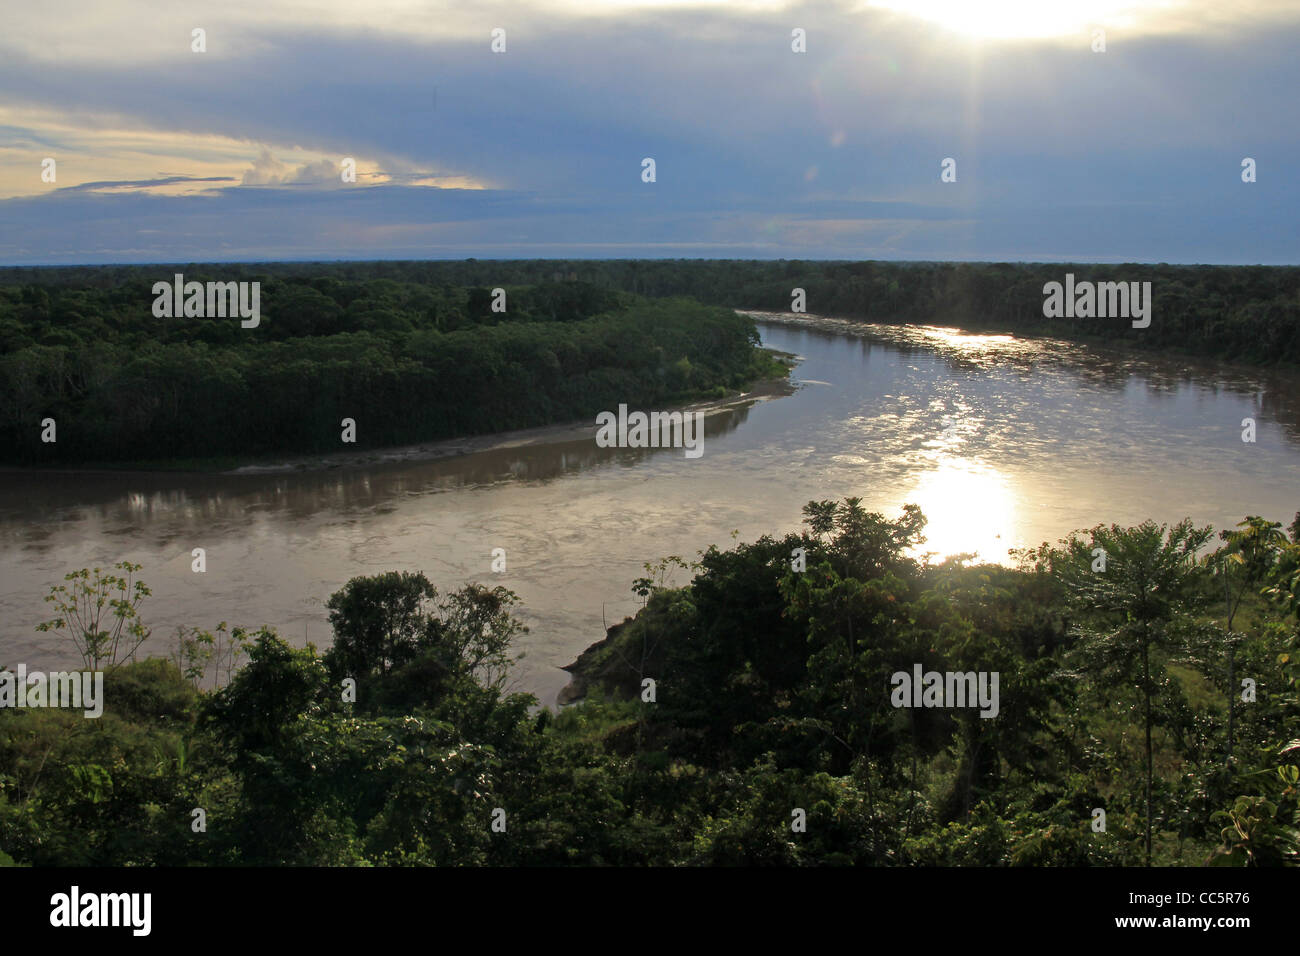 Primary Rain Forest viewed from the air in the Madre de Dios Region, Peru (The Amazon) - Stock Image